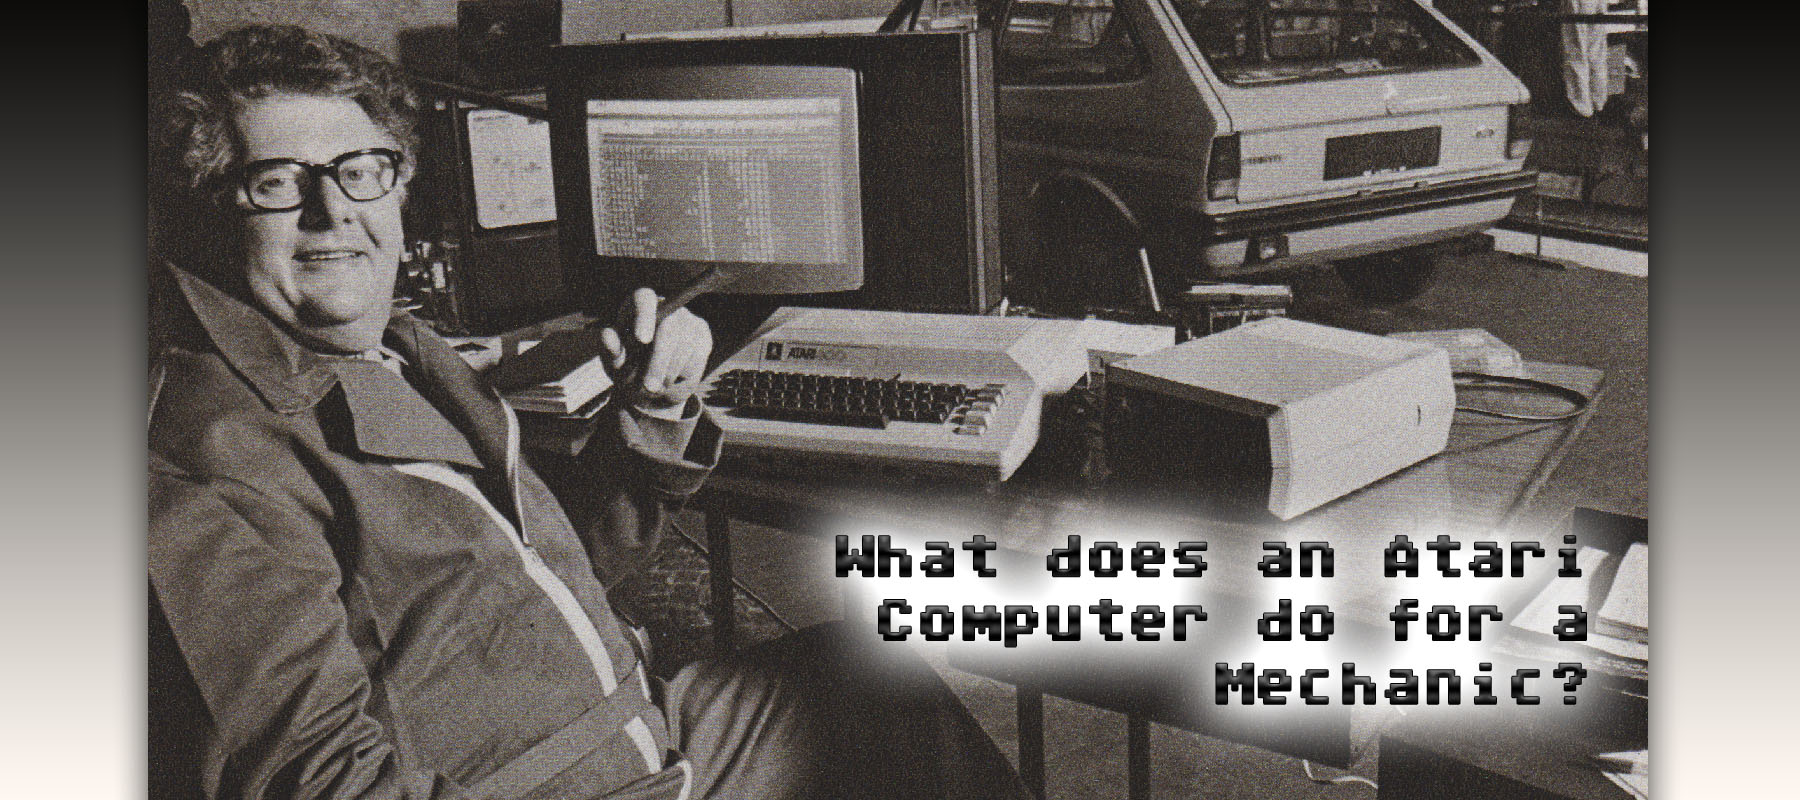 What can the Atari Computer do for a mechanic?